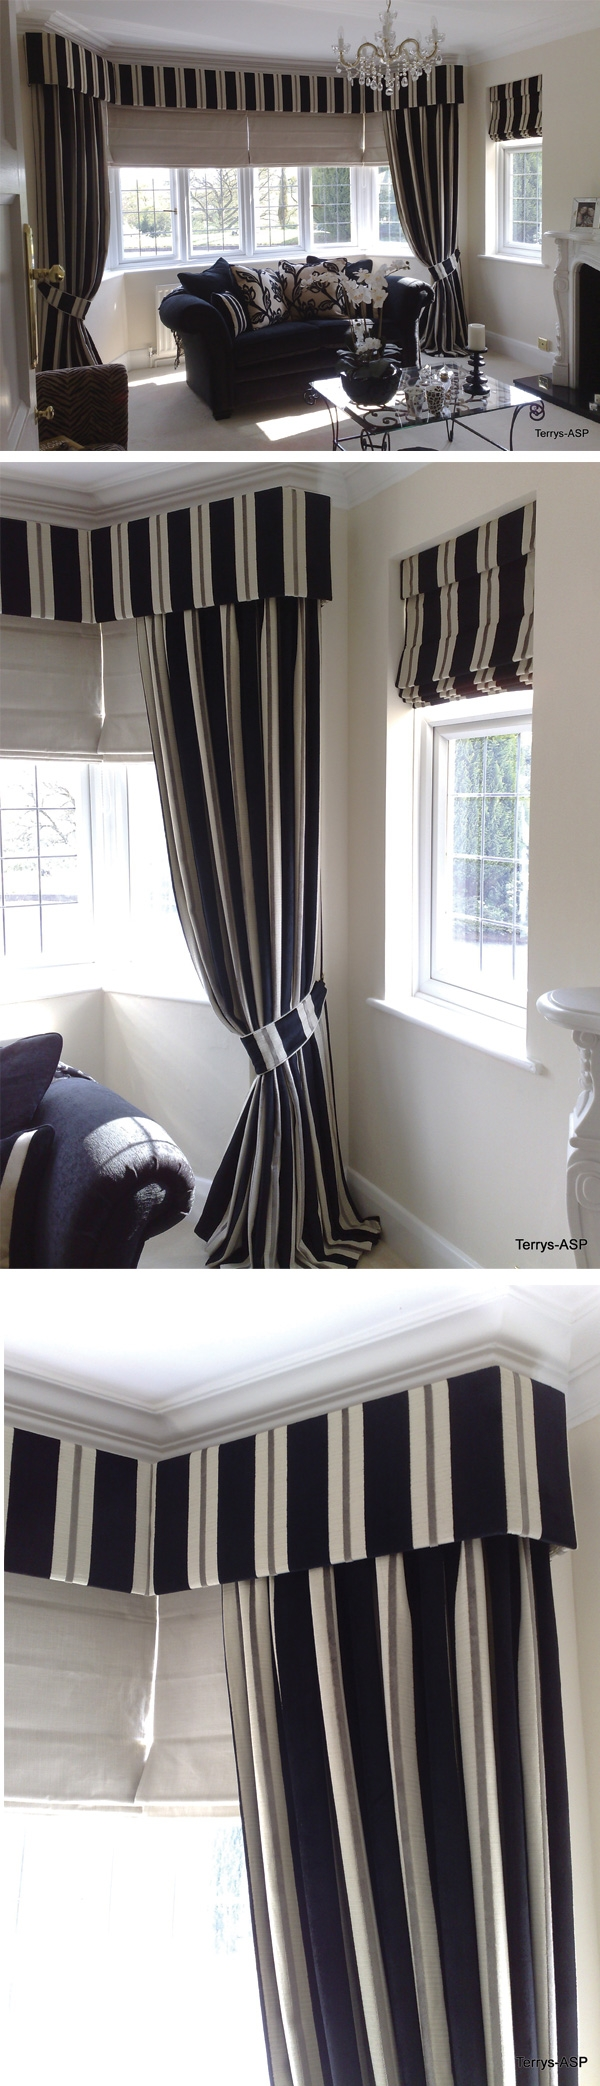 Stunning Striped Upholstered Pelmet Shaped Into A Bay Window With Within Curtains With Matching Roman Blinds (Image 13 of 15)